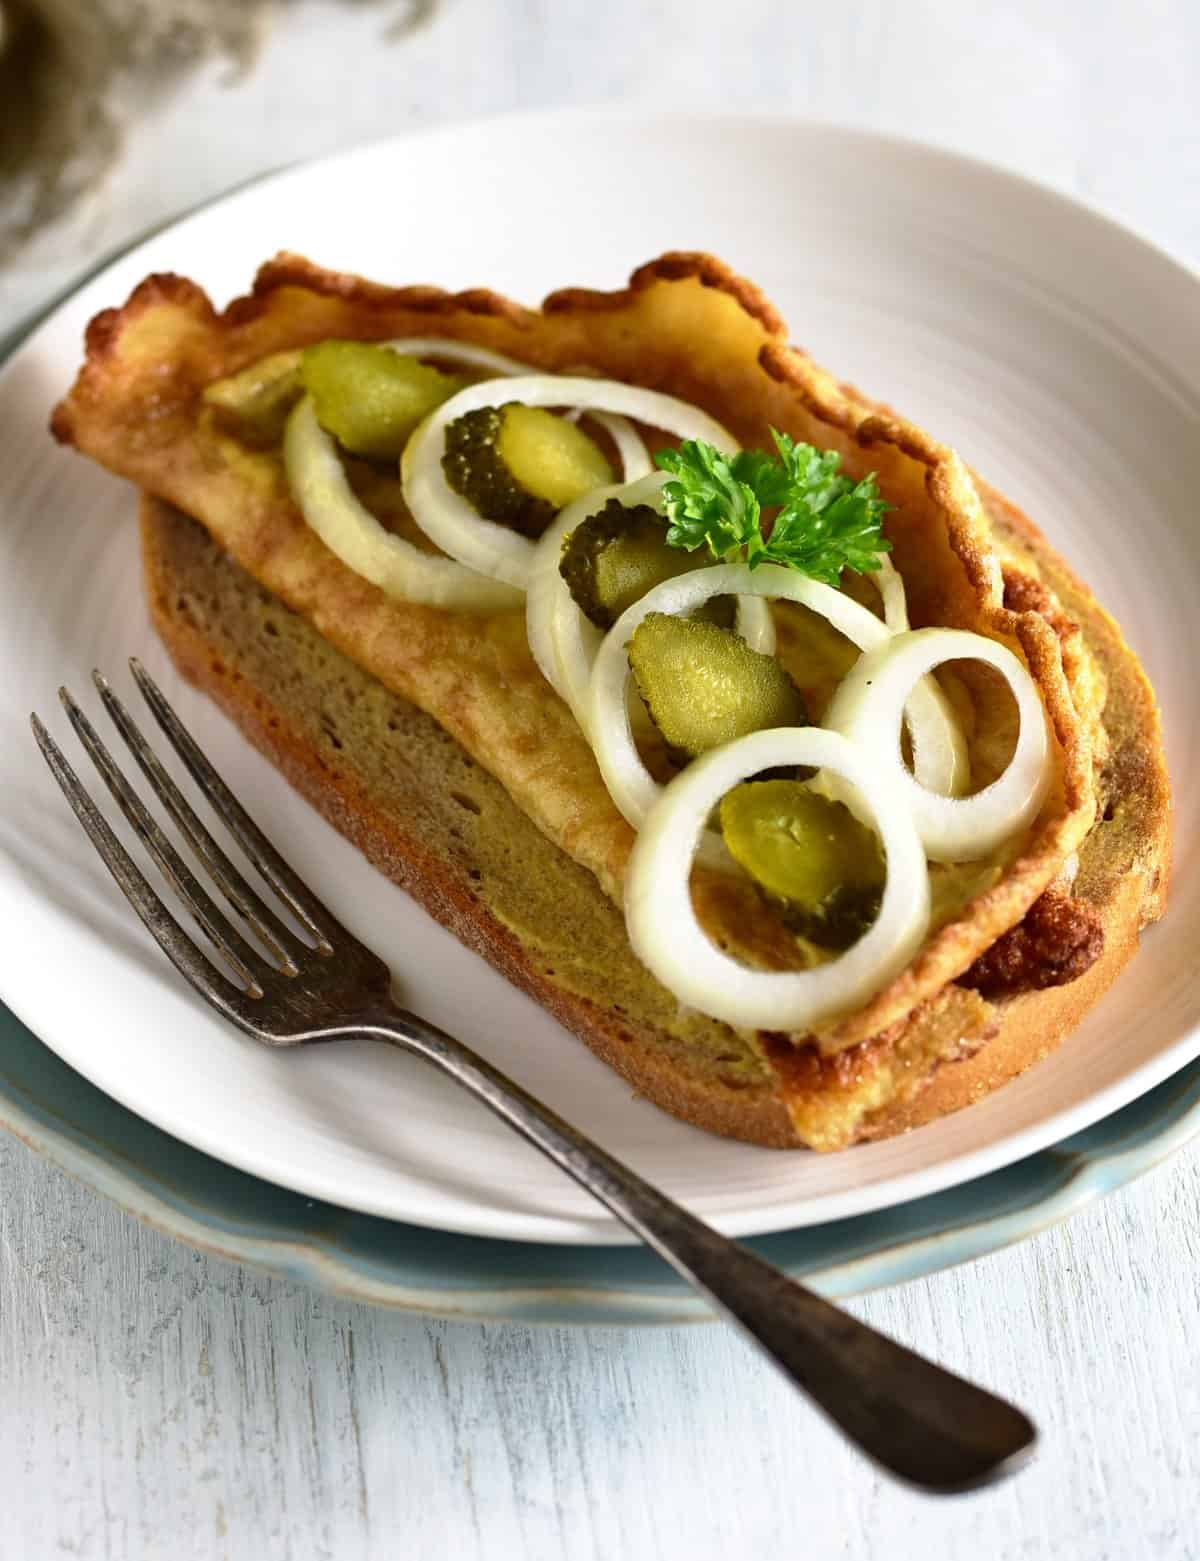 bread crums omelette with onion and pickles